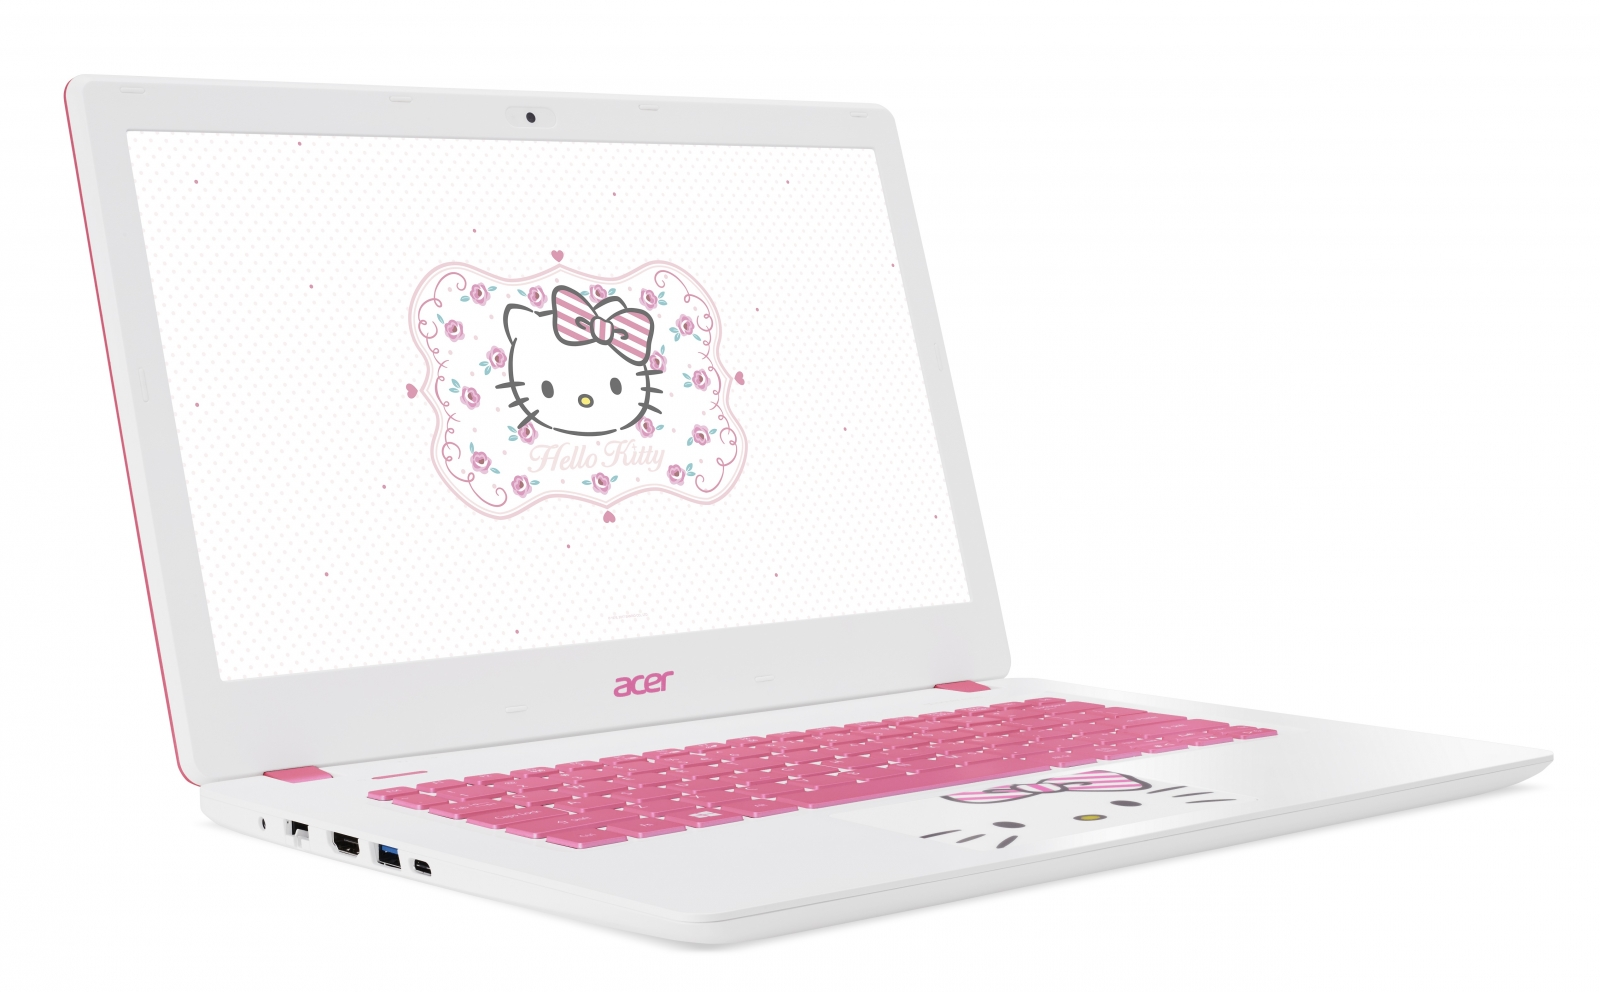 fbe143061 Acer launches limited edition Hello Kitty laptop in Southeast Asia